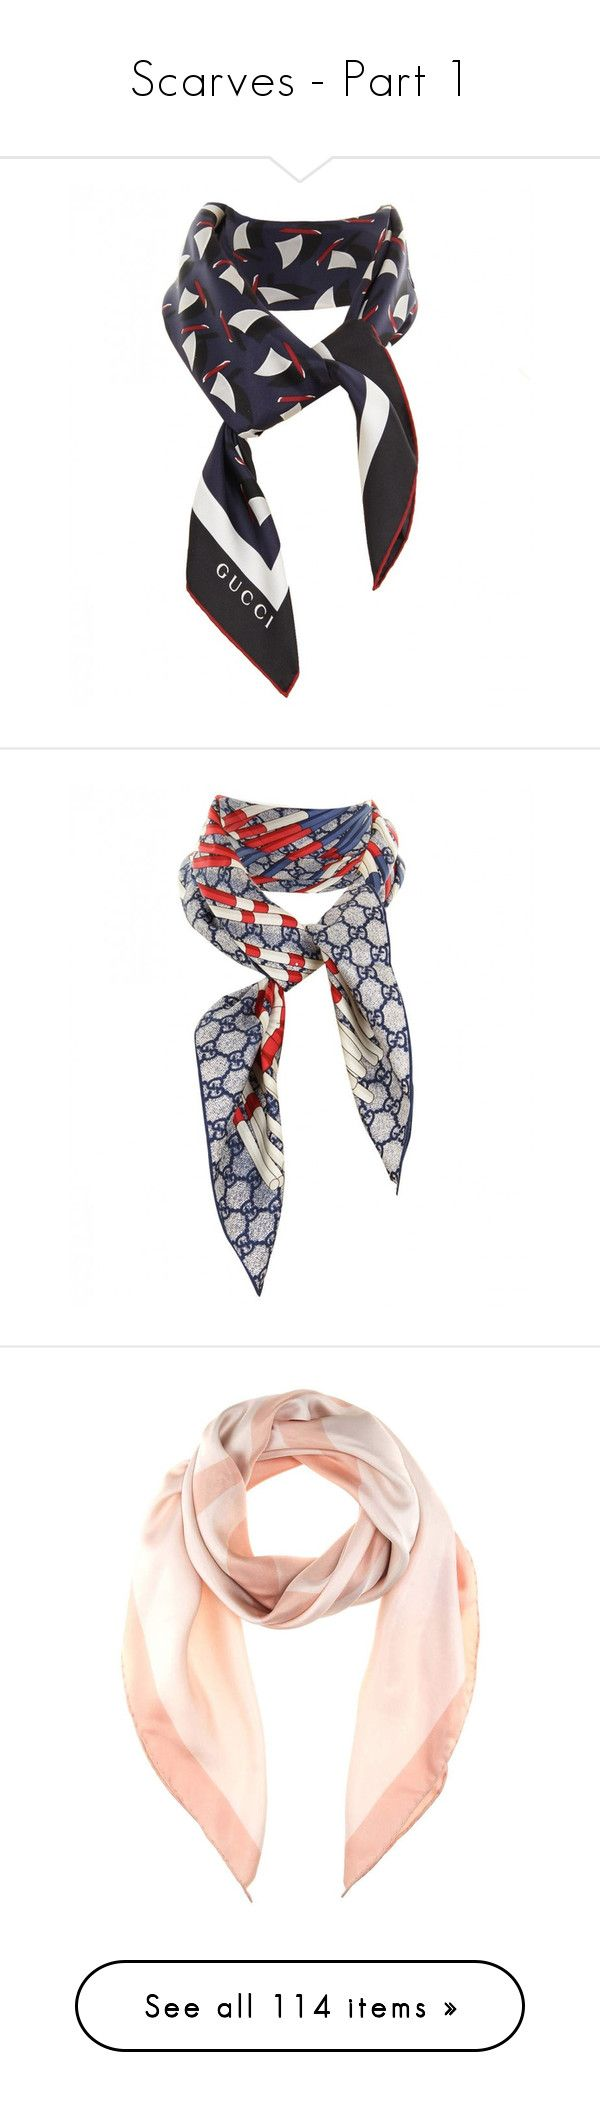 """""""Scarves - Part 1"""" by l33l ❤ liked on Polyvore featuring accessories, scarves, silk twill scarves, navy blue shawl, gucci, navy shawl, navy scarves, red shawl, gucci shawl and blue and white scarves"""